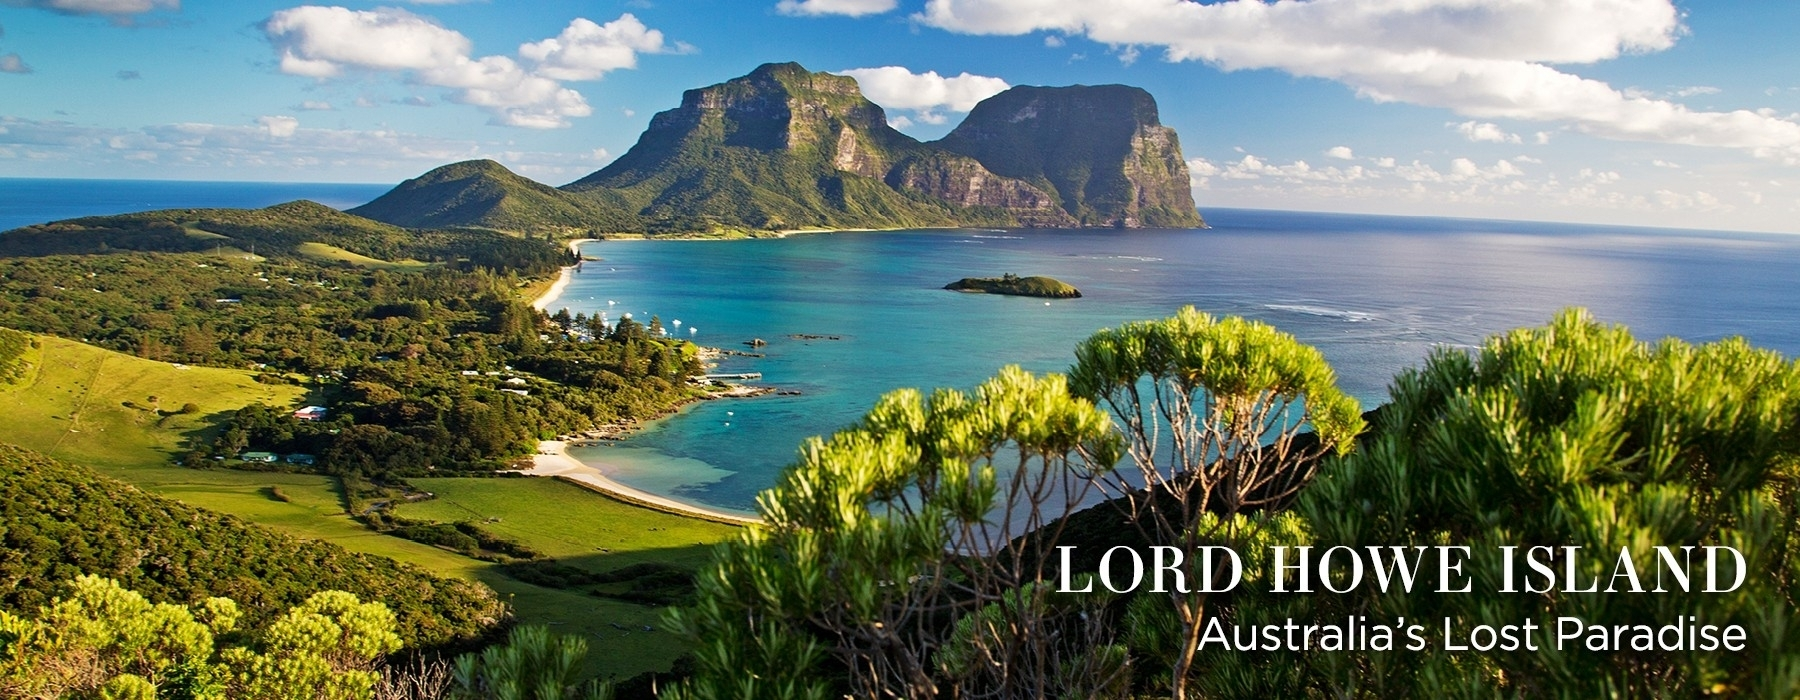 Permalink to Traveling in Lord Howe Island, Australia